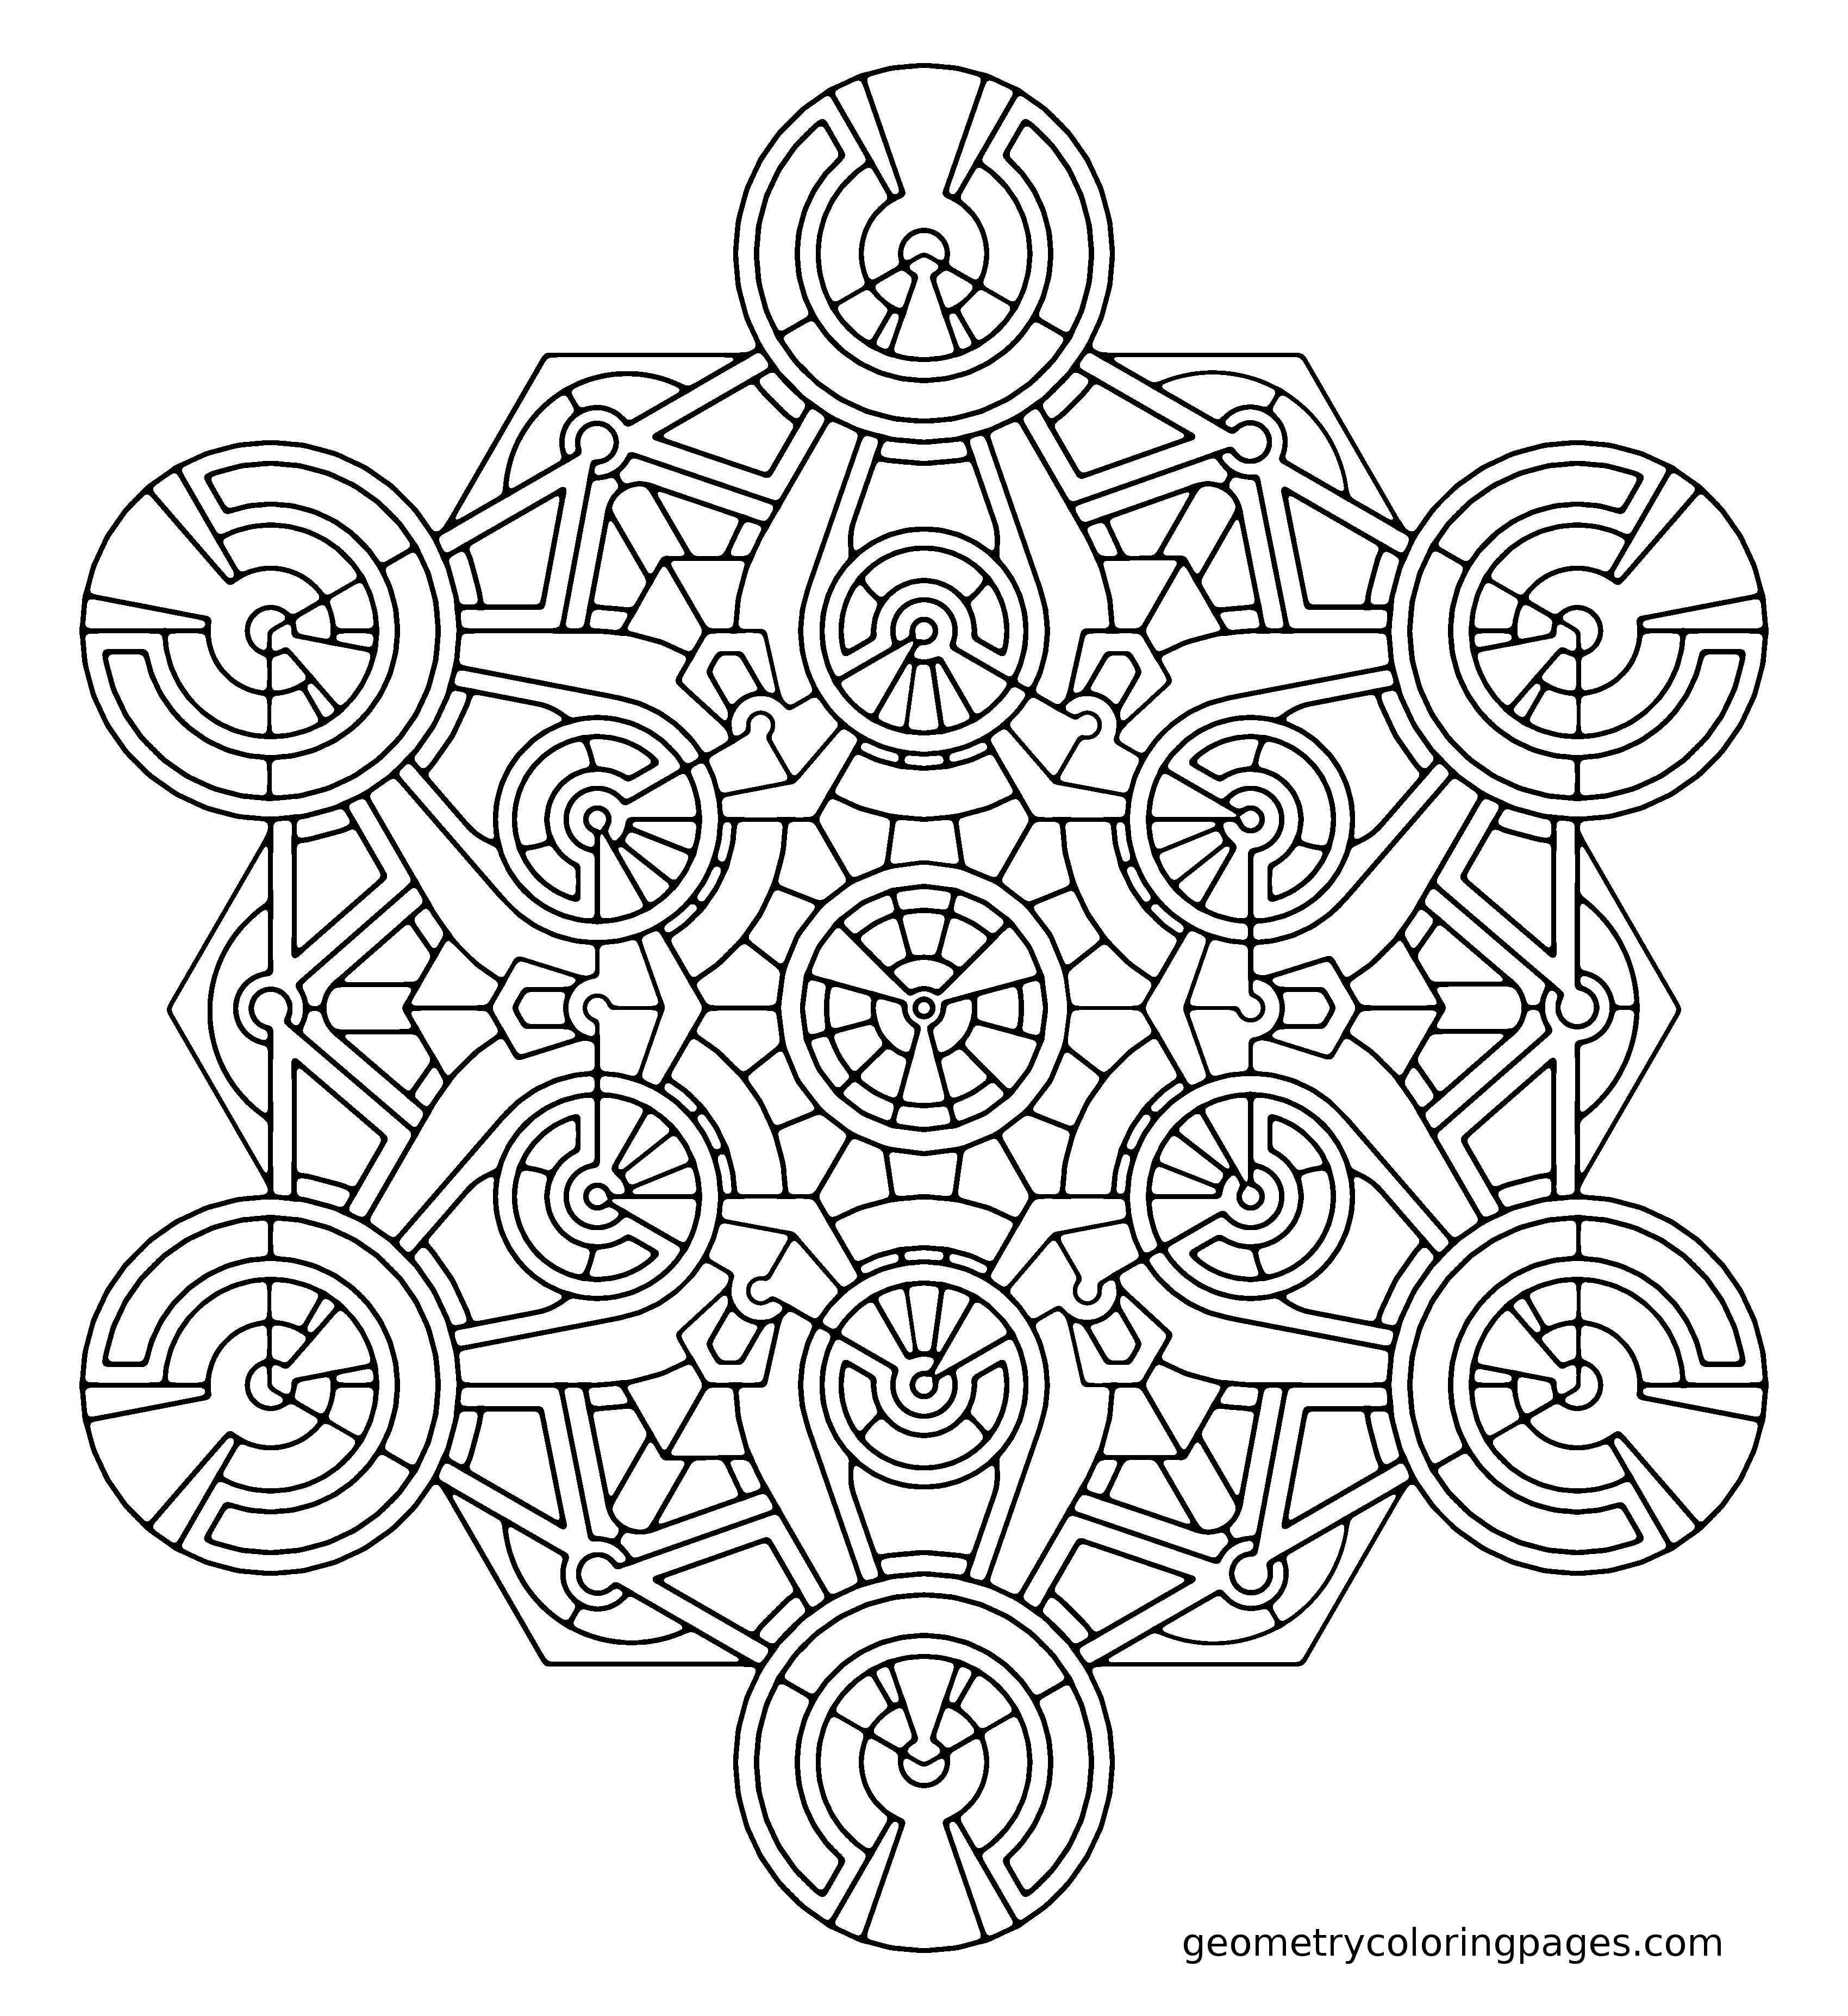 coloring page metatron u0027s generator from geometrycoloringpages com